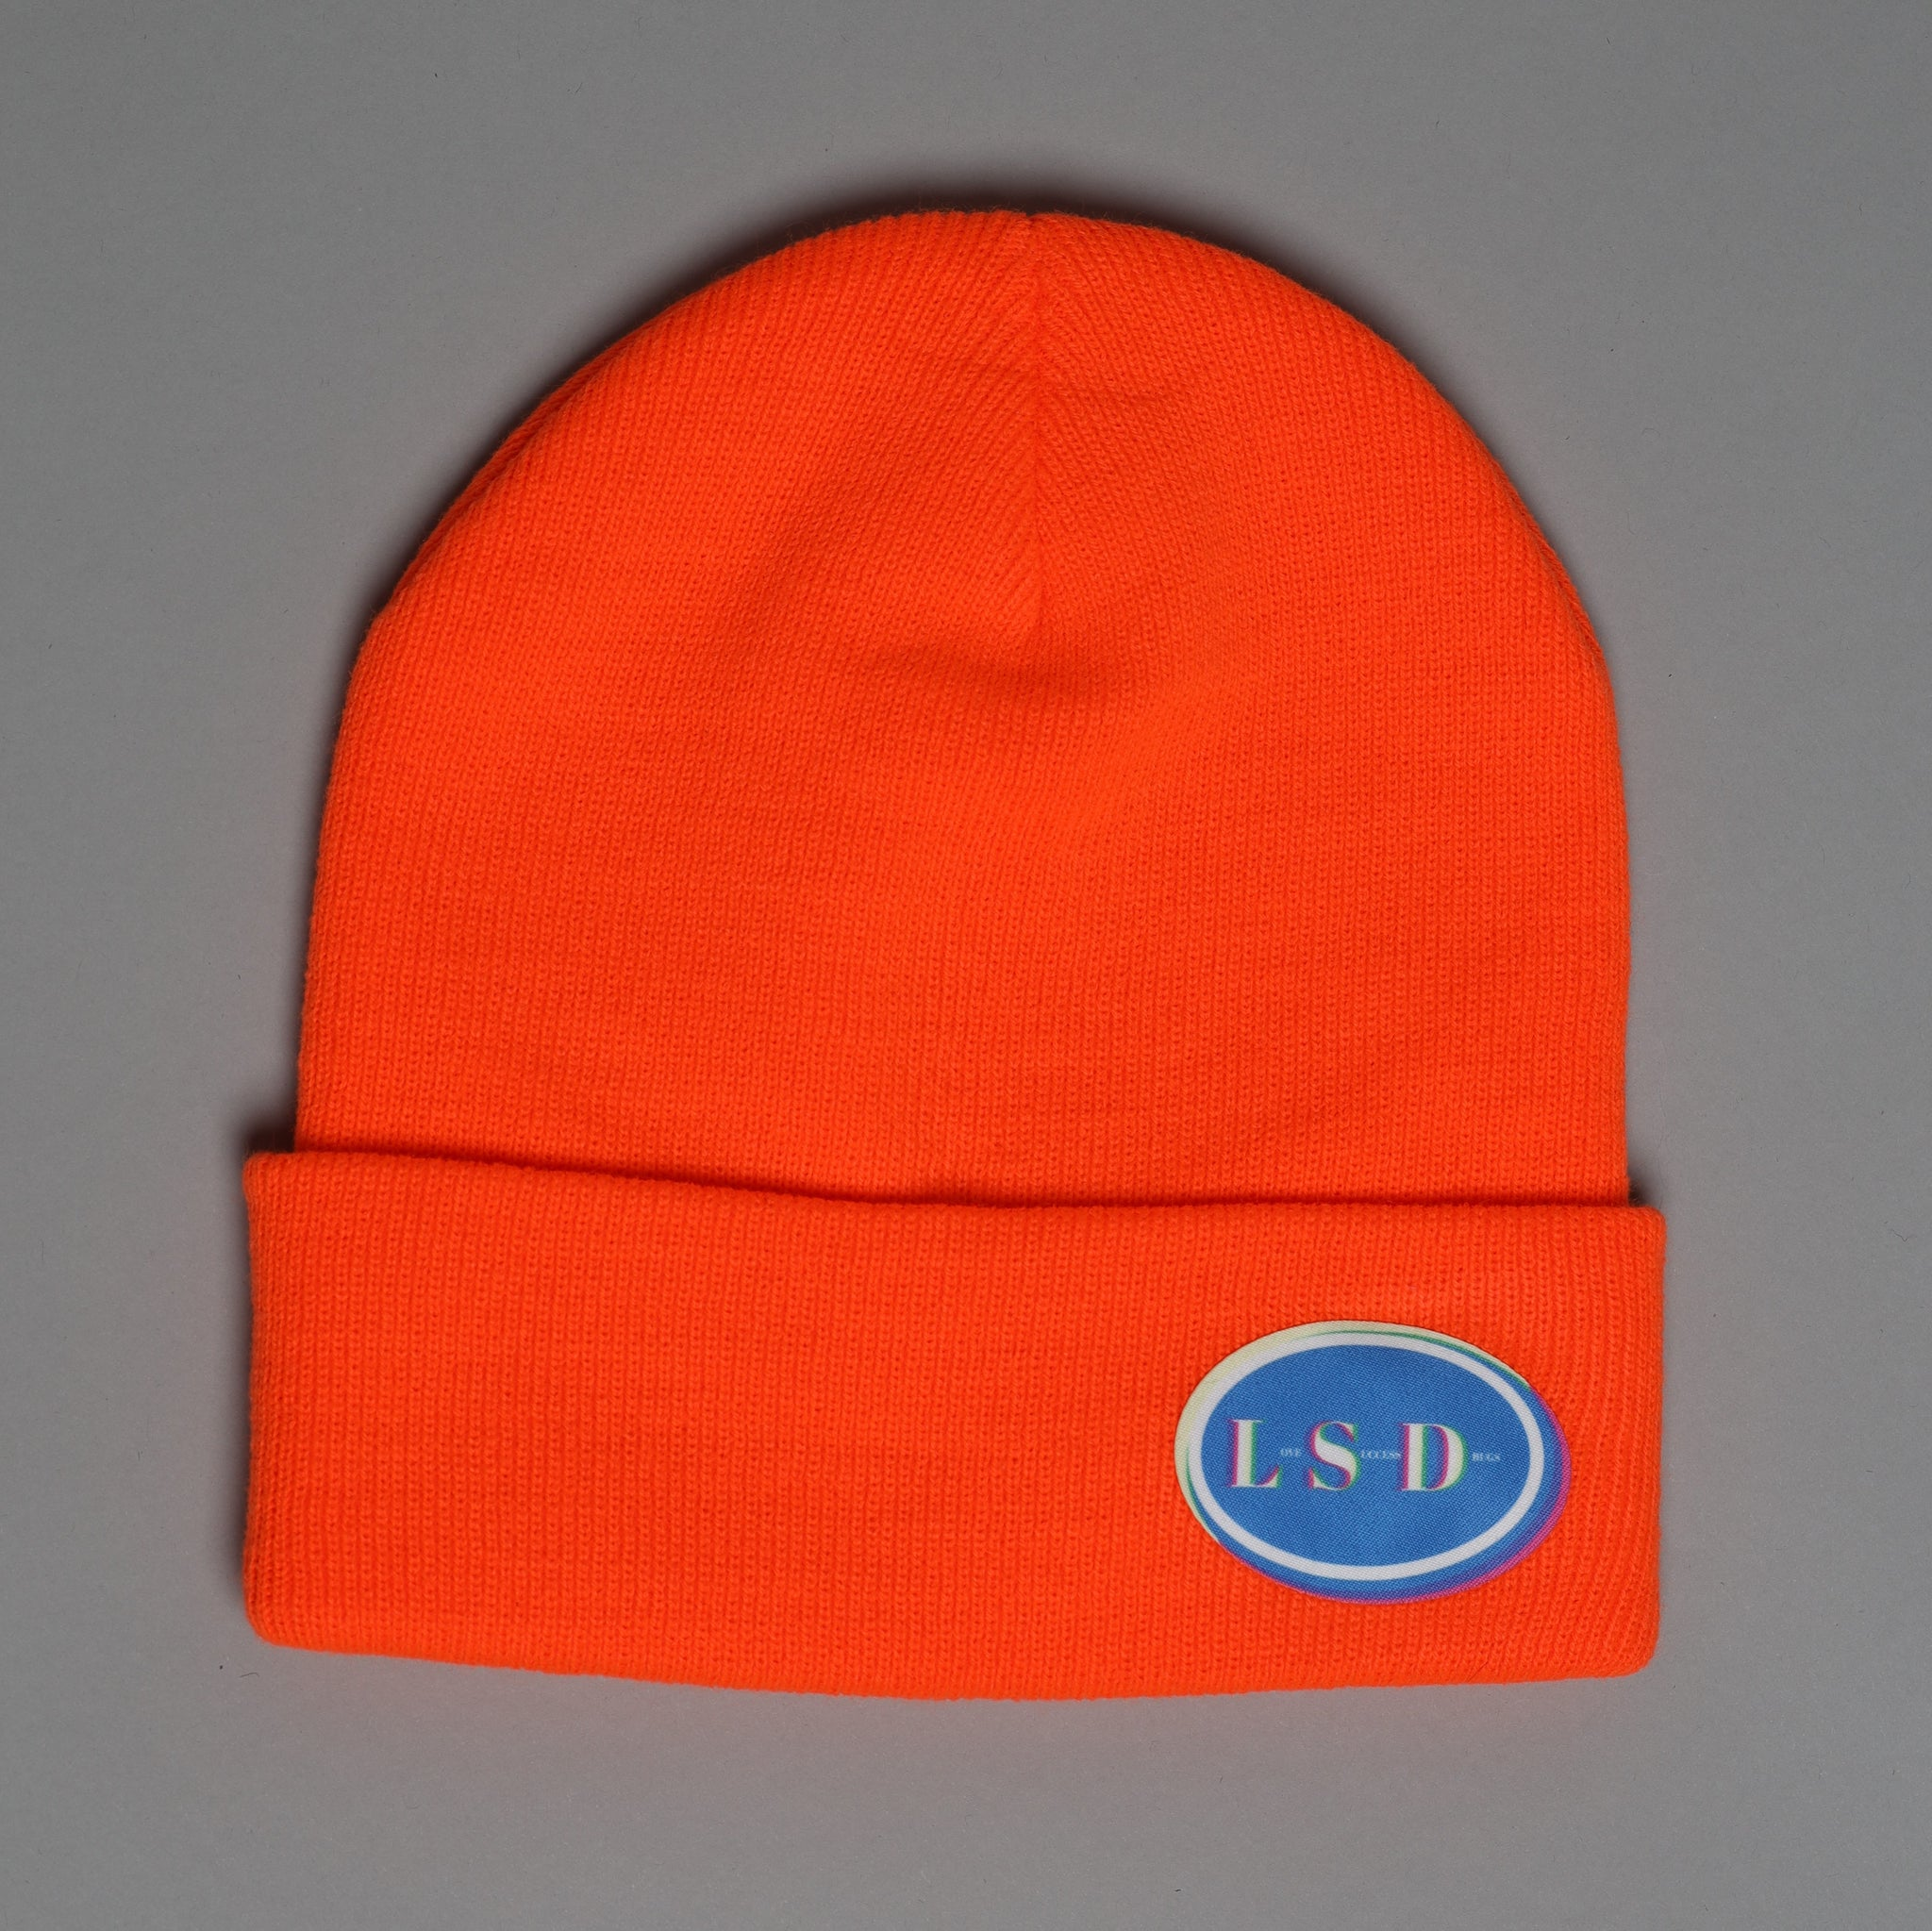 LSD Beanie in Safety Orange